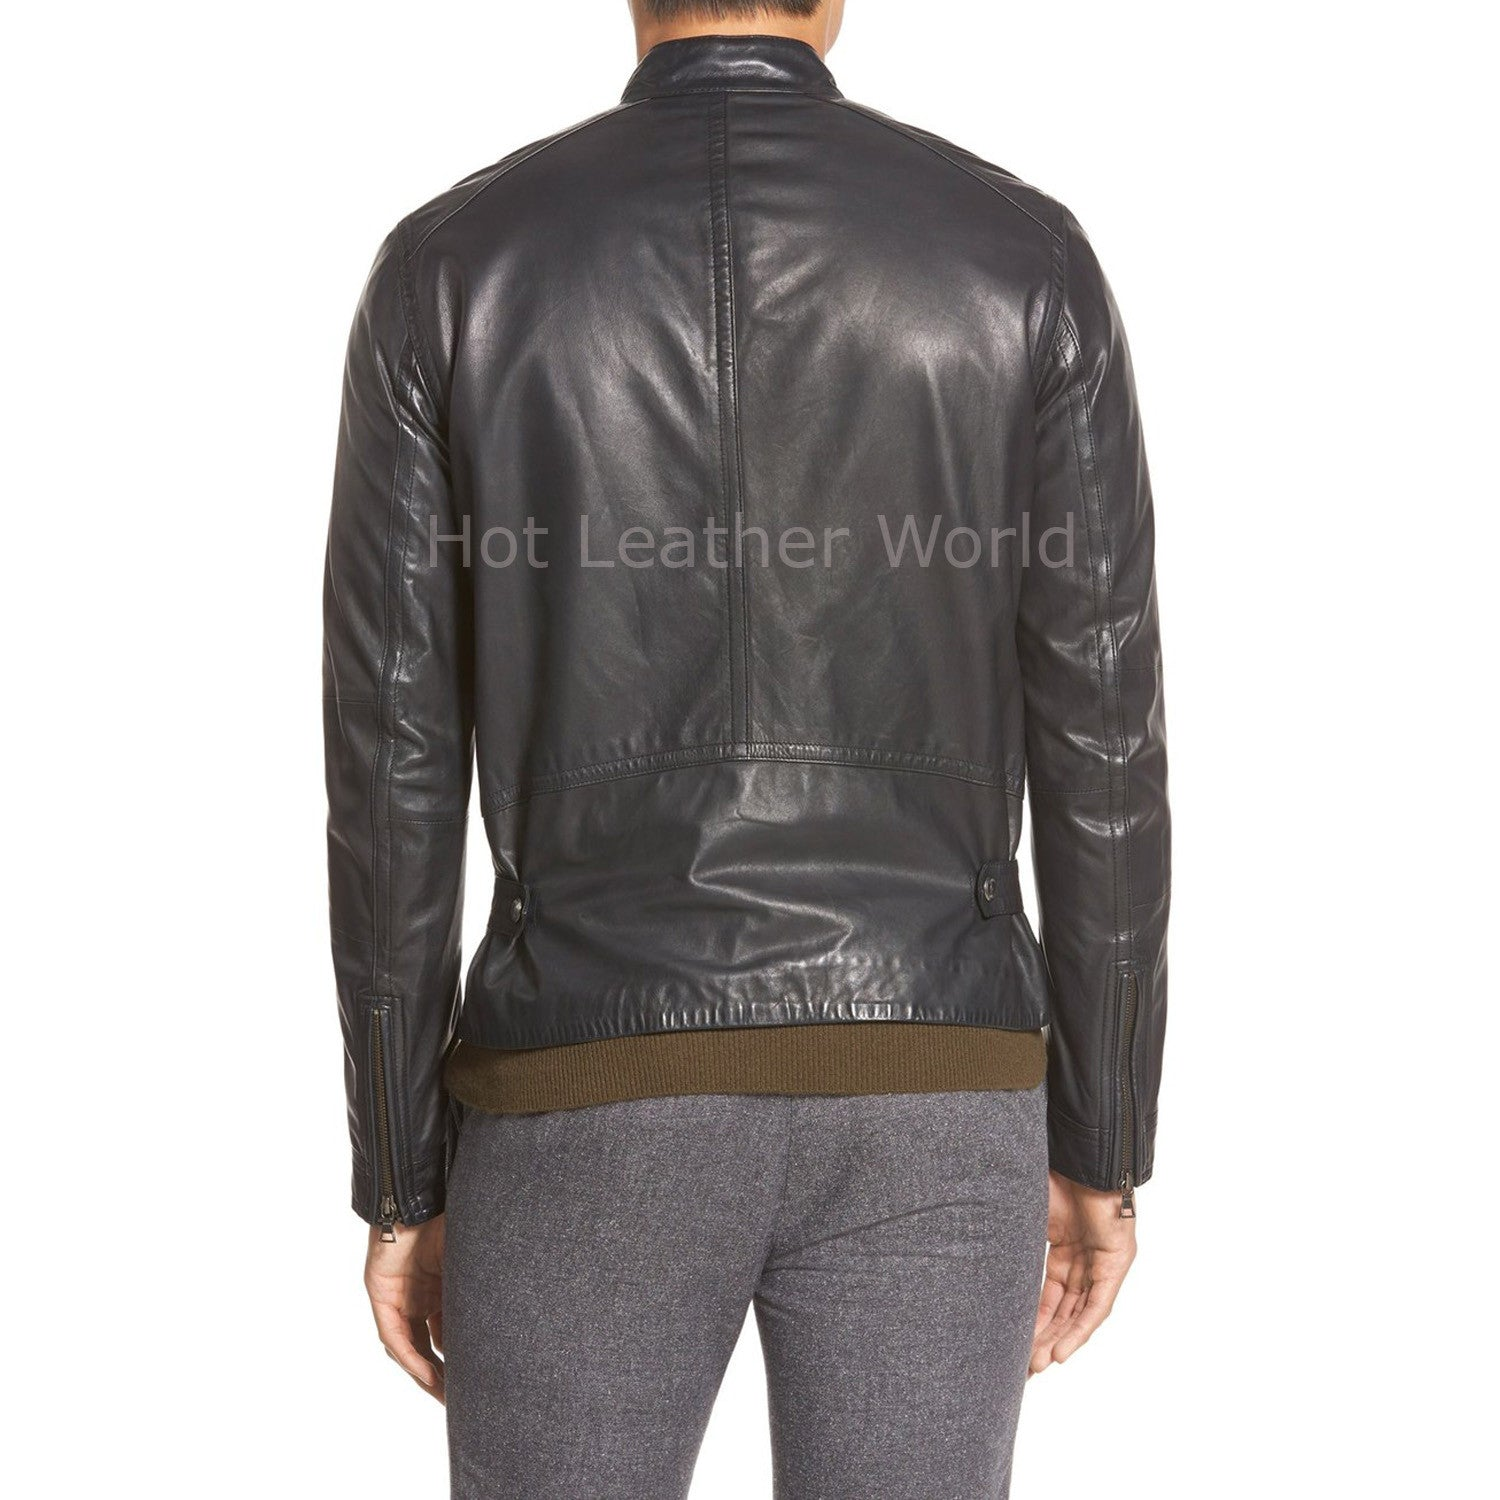 Tab Collar Men Leather Jacket -  HOTLEATHERWORLD